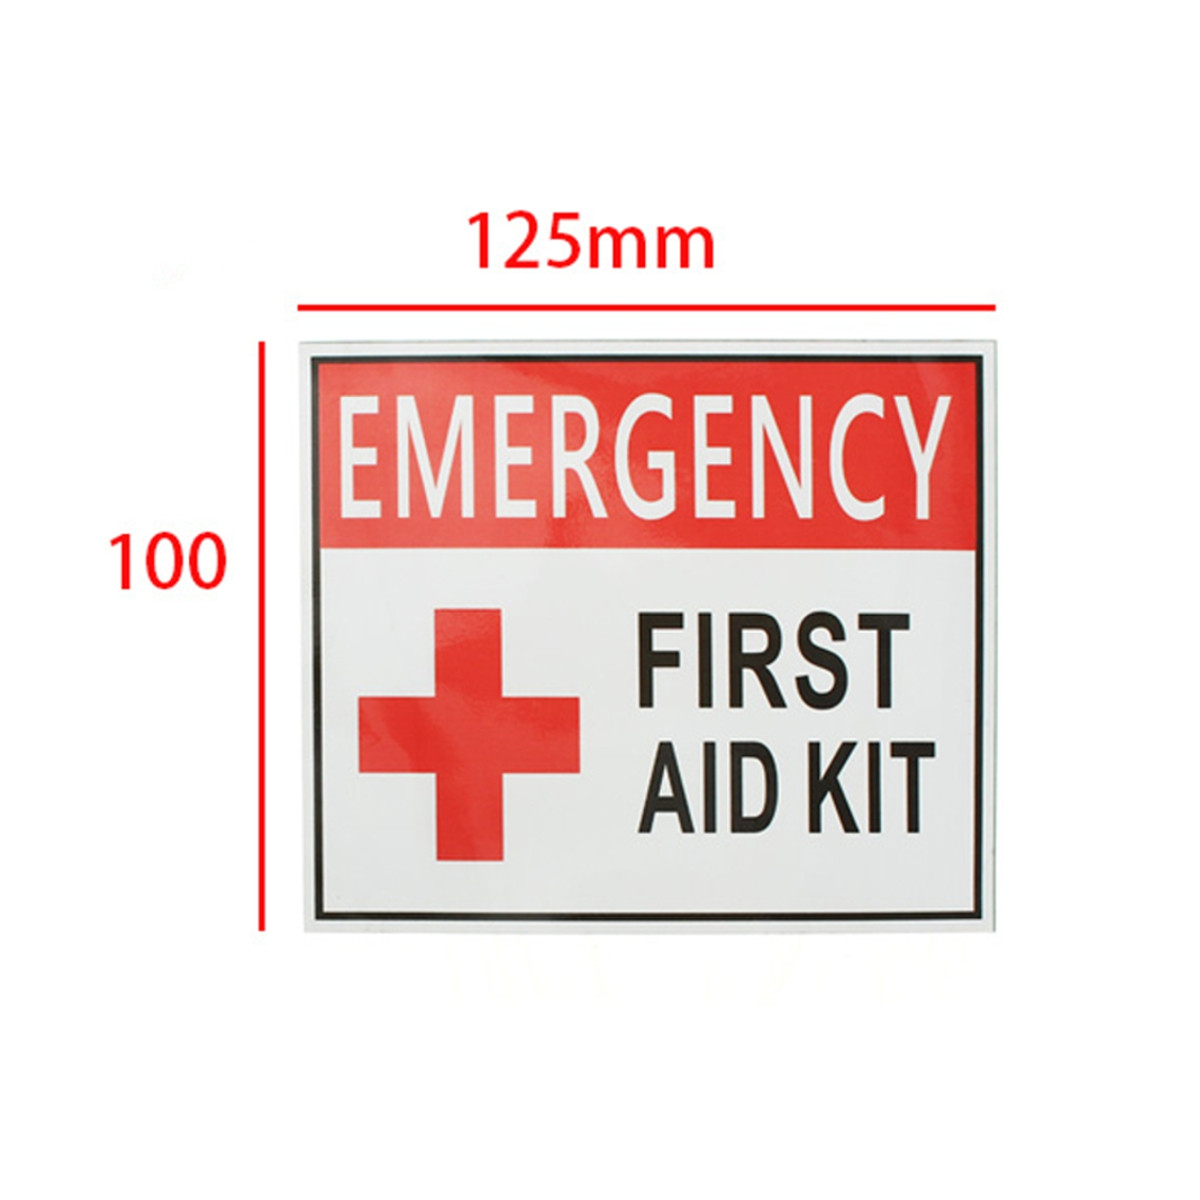 4 Size EMERGENCY FIRST AID KIT Vinyl Sticker Label Signs Red Cross Health Safety Home Living School Outdoor MATCC US,100*125mm color